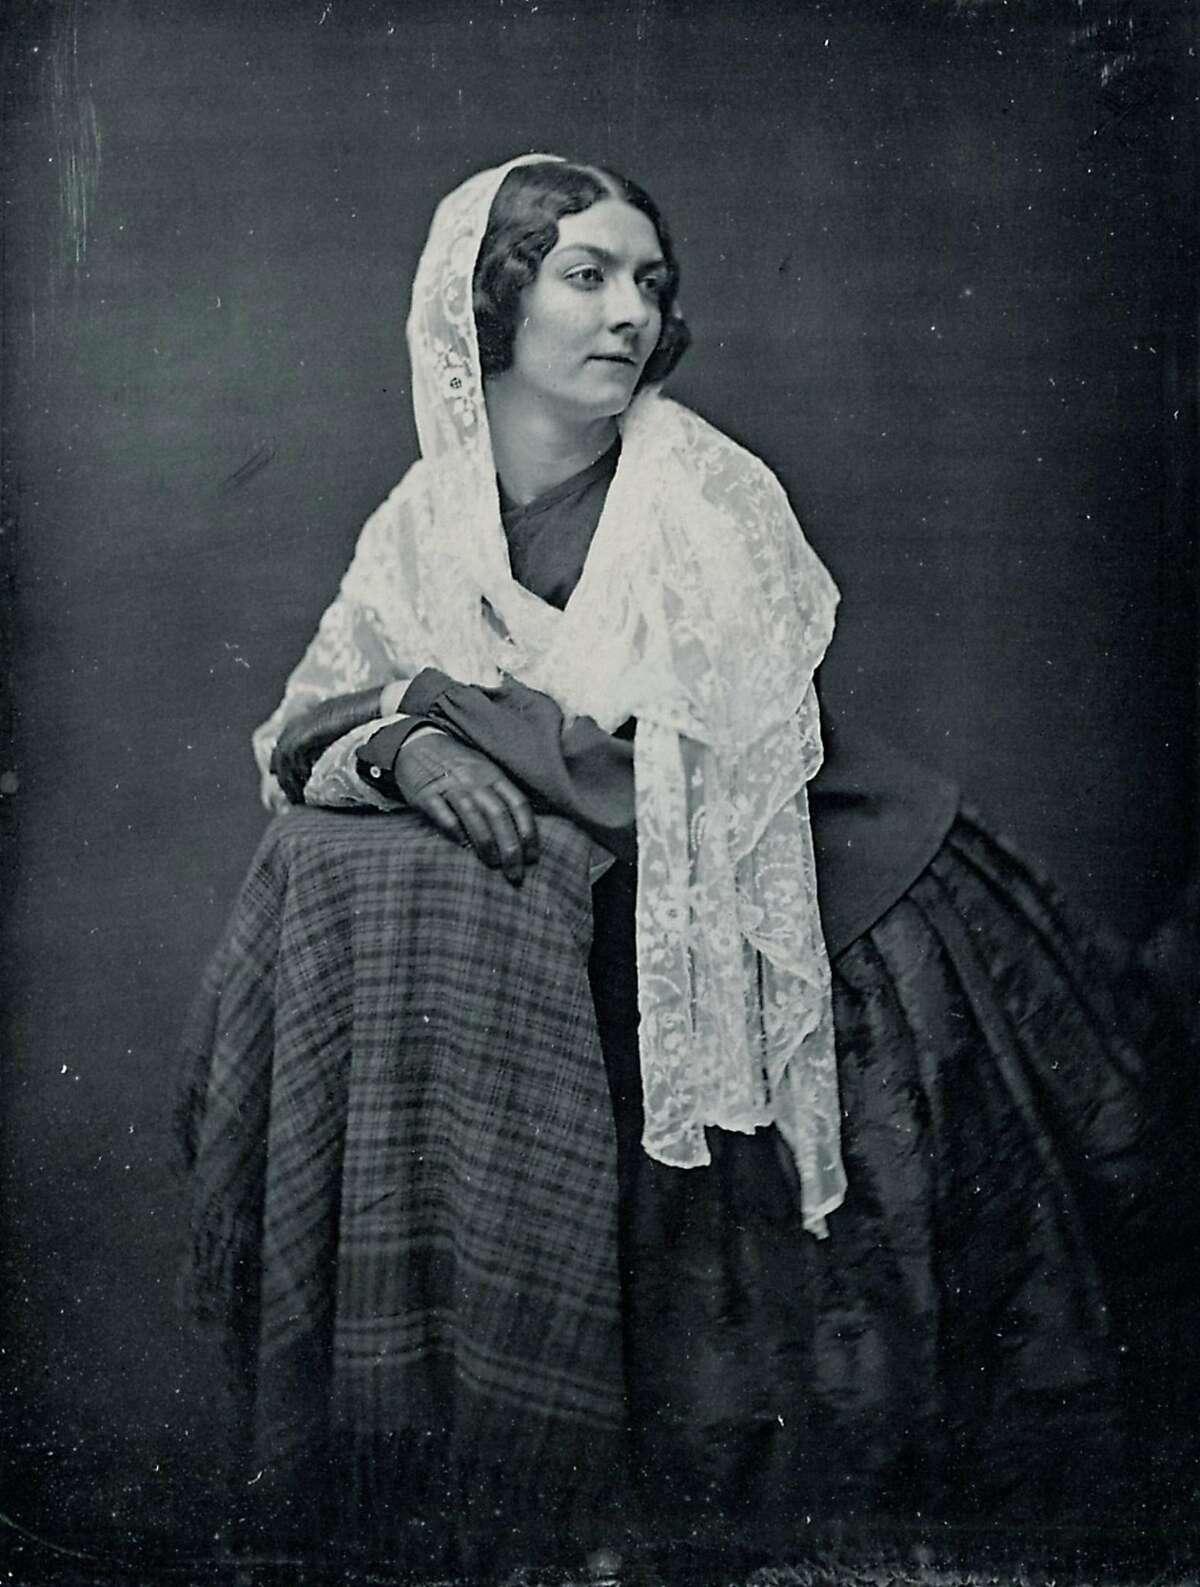 A daguerreotype of Lola Montez, taken in 1851. Montez took a young Lotta Crabtree under her wing and taught her song and dance routines.